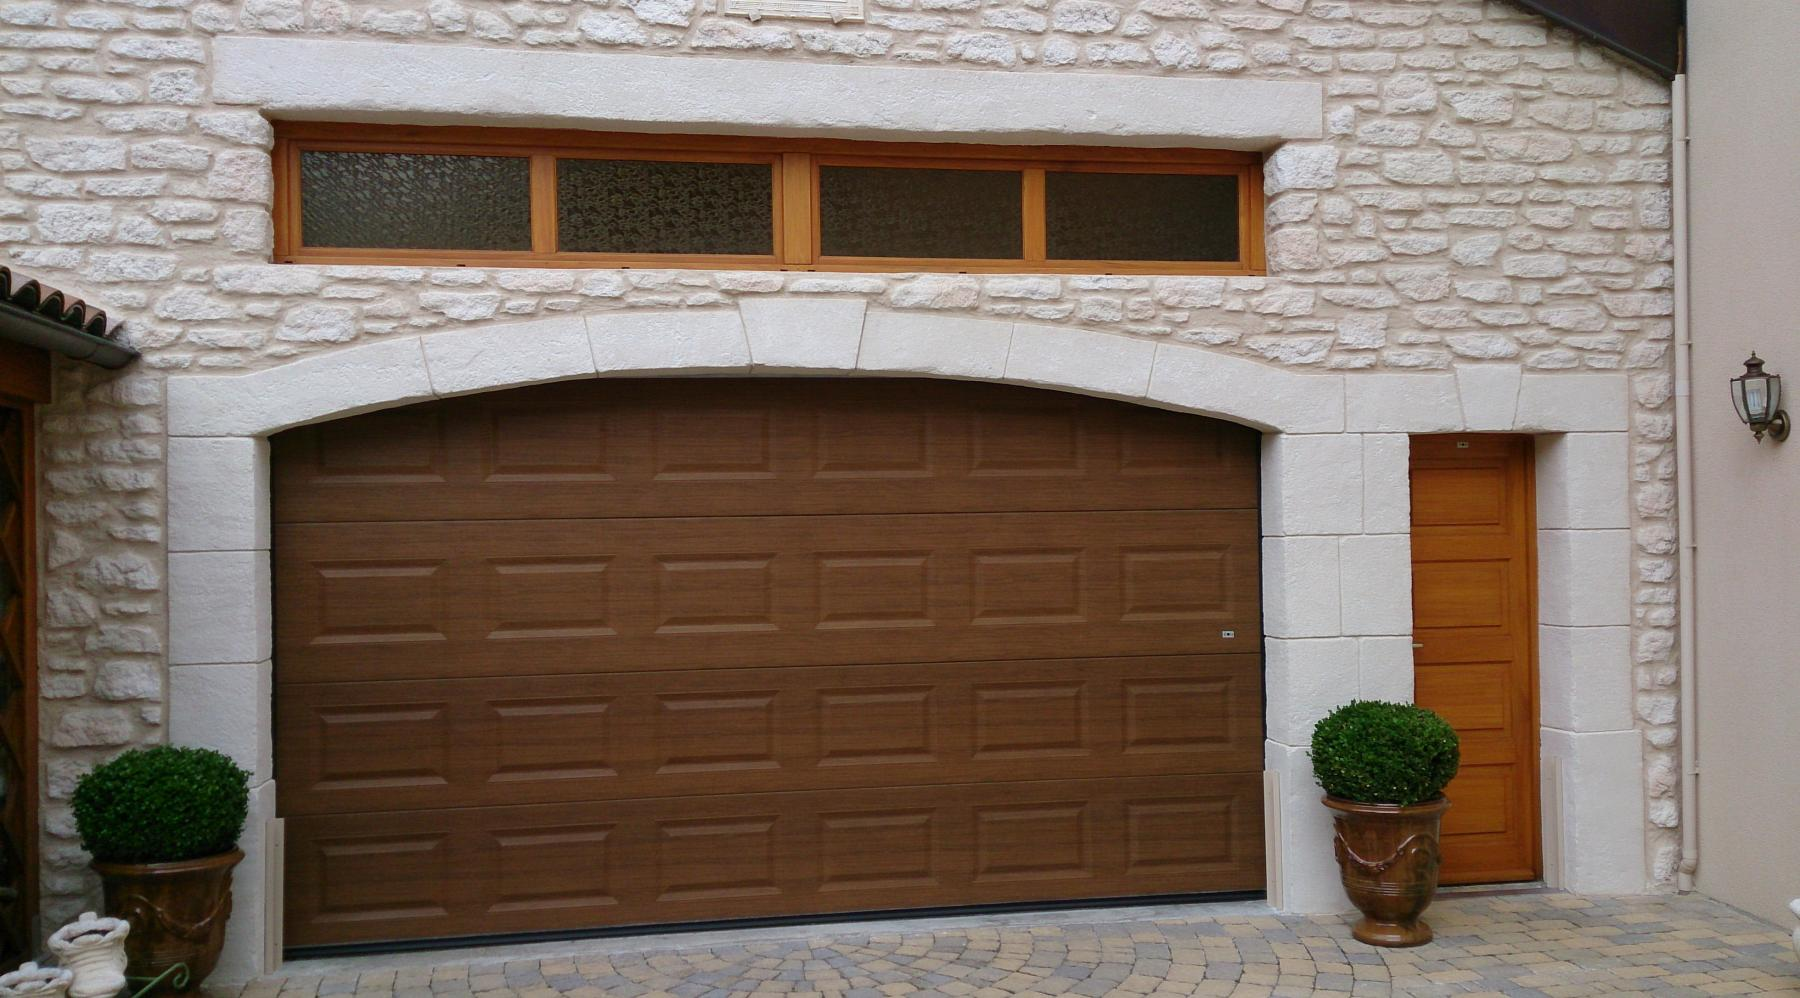 Galerie portes de garage weigerding for Porte de garage pvc imitation bois